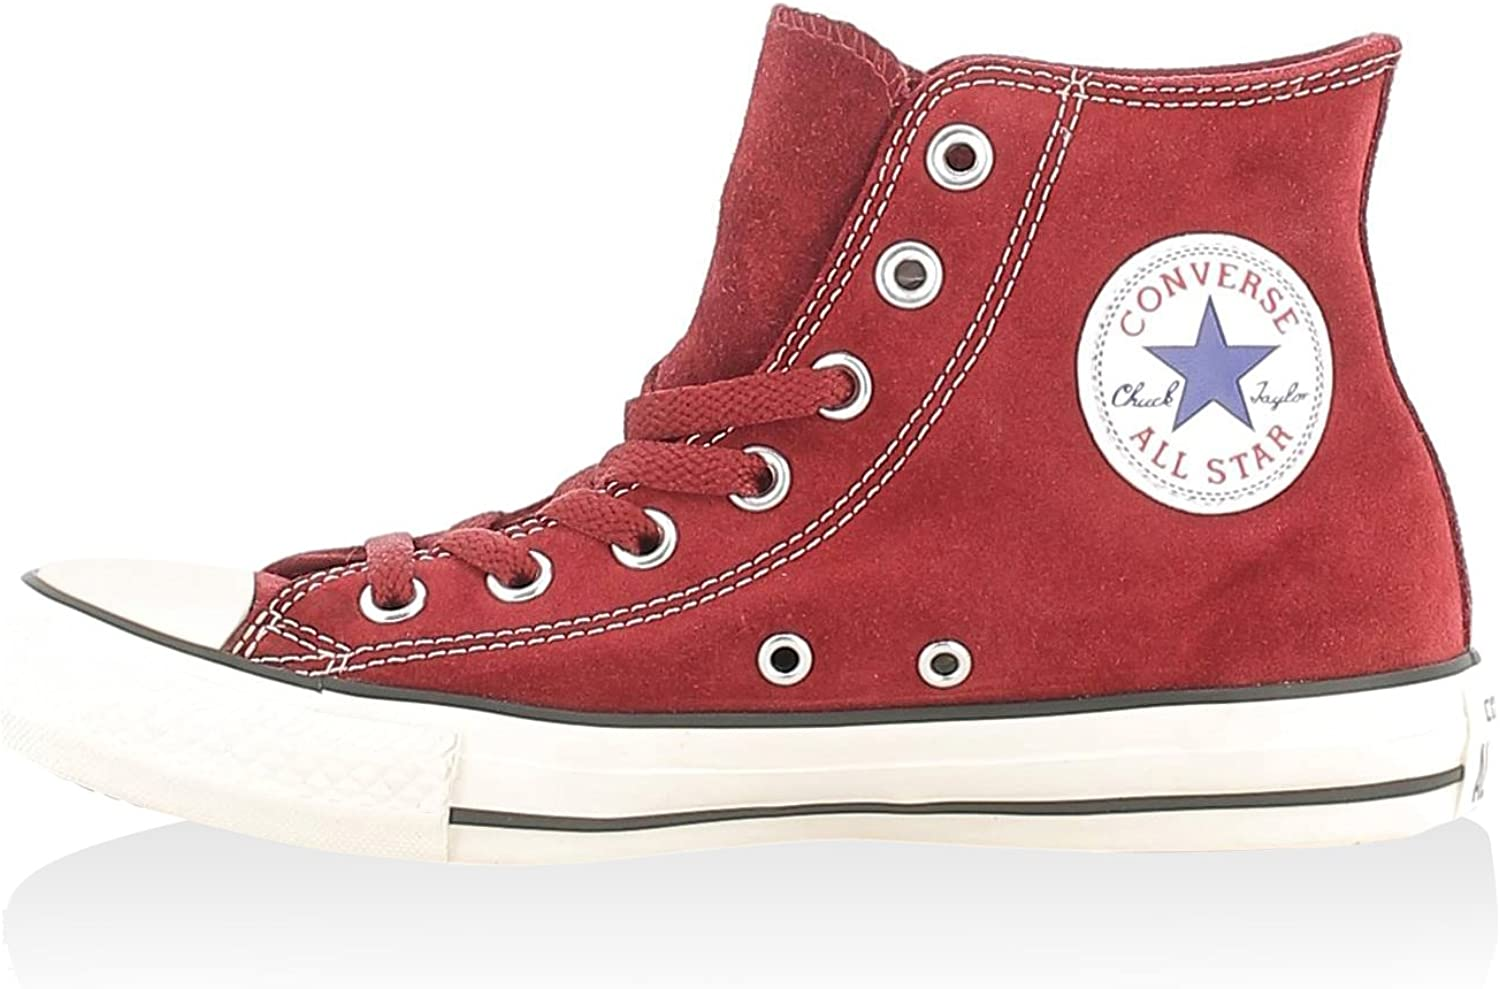 shoes UNISEX CONVERSE ALL STAR HI SUEDE 155243C (41.5 - RED)